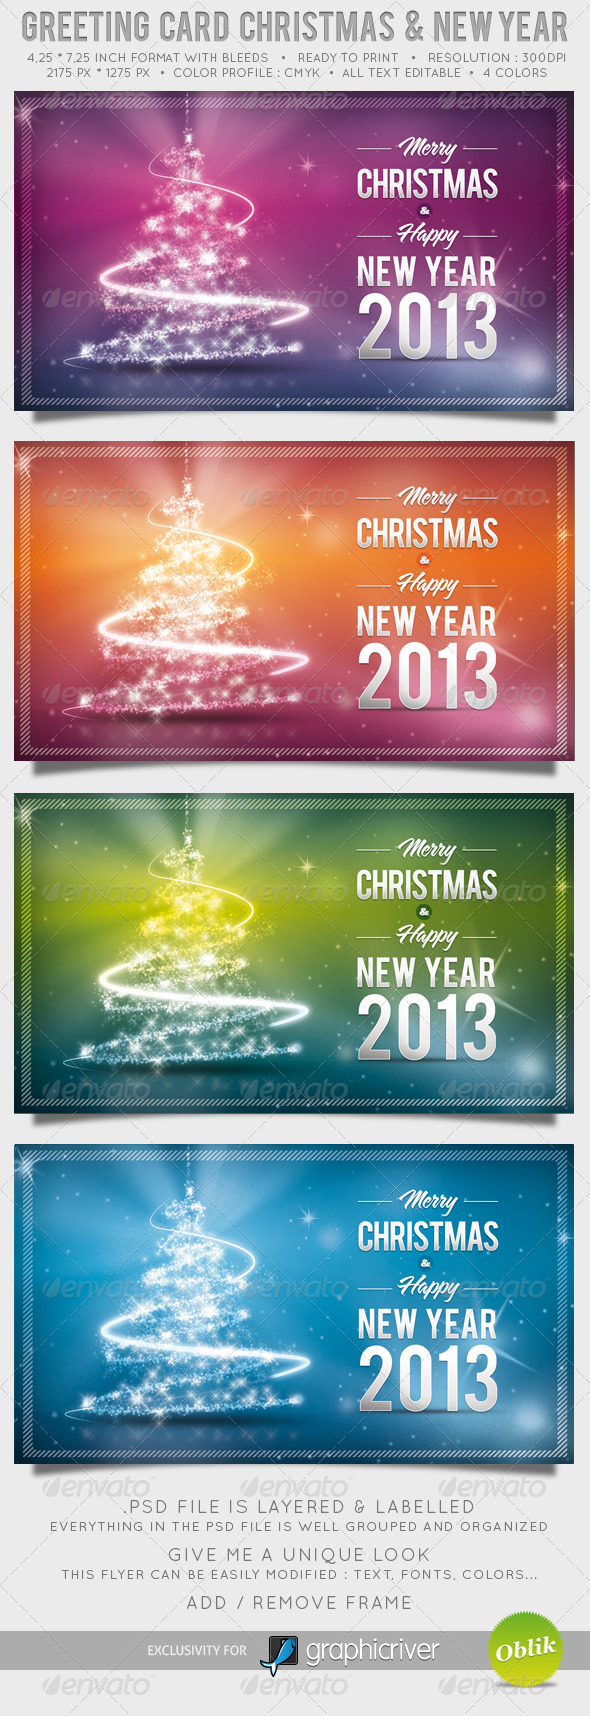 GraphicRiver Greeting Card Christmas and New Year 1028757